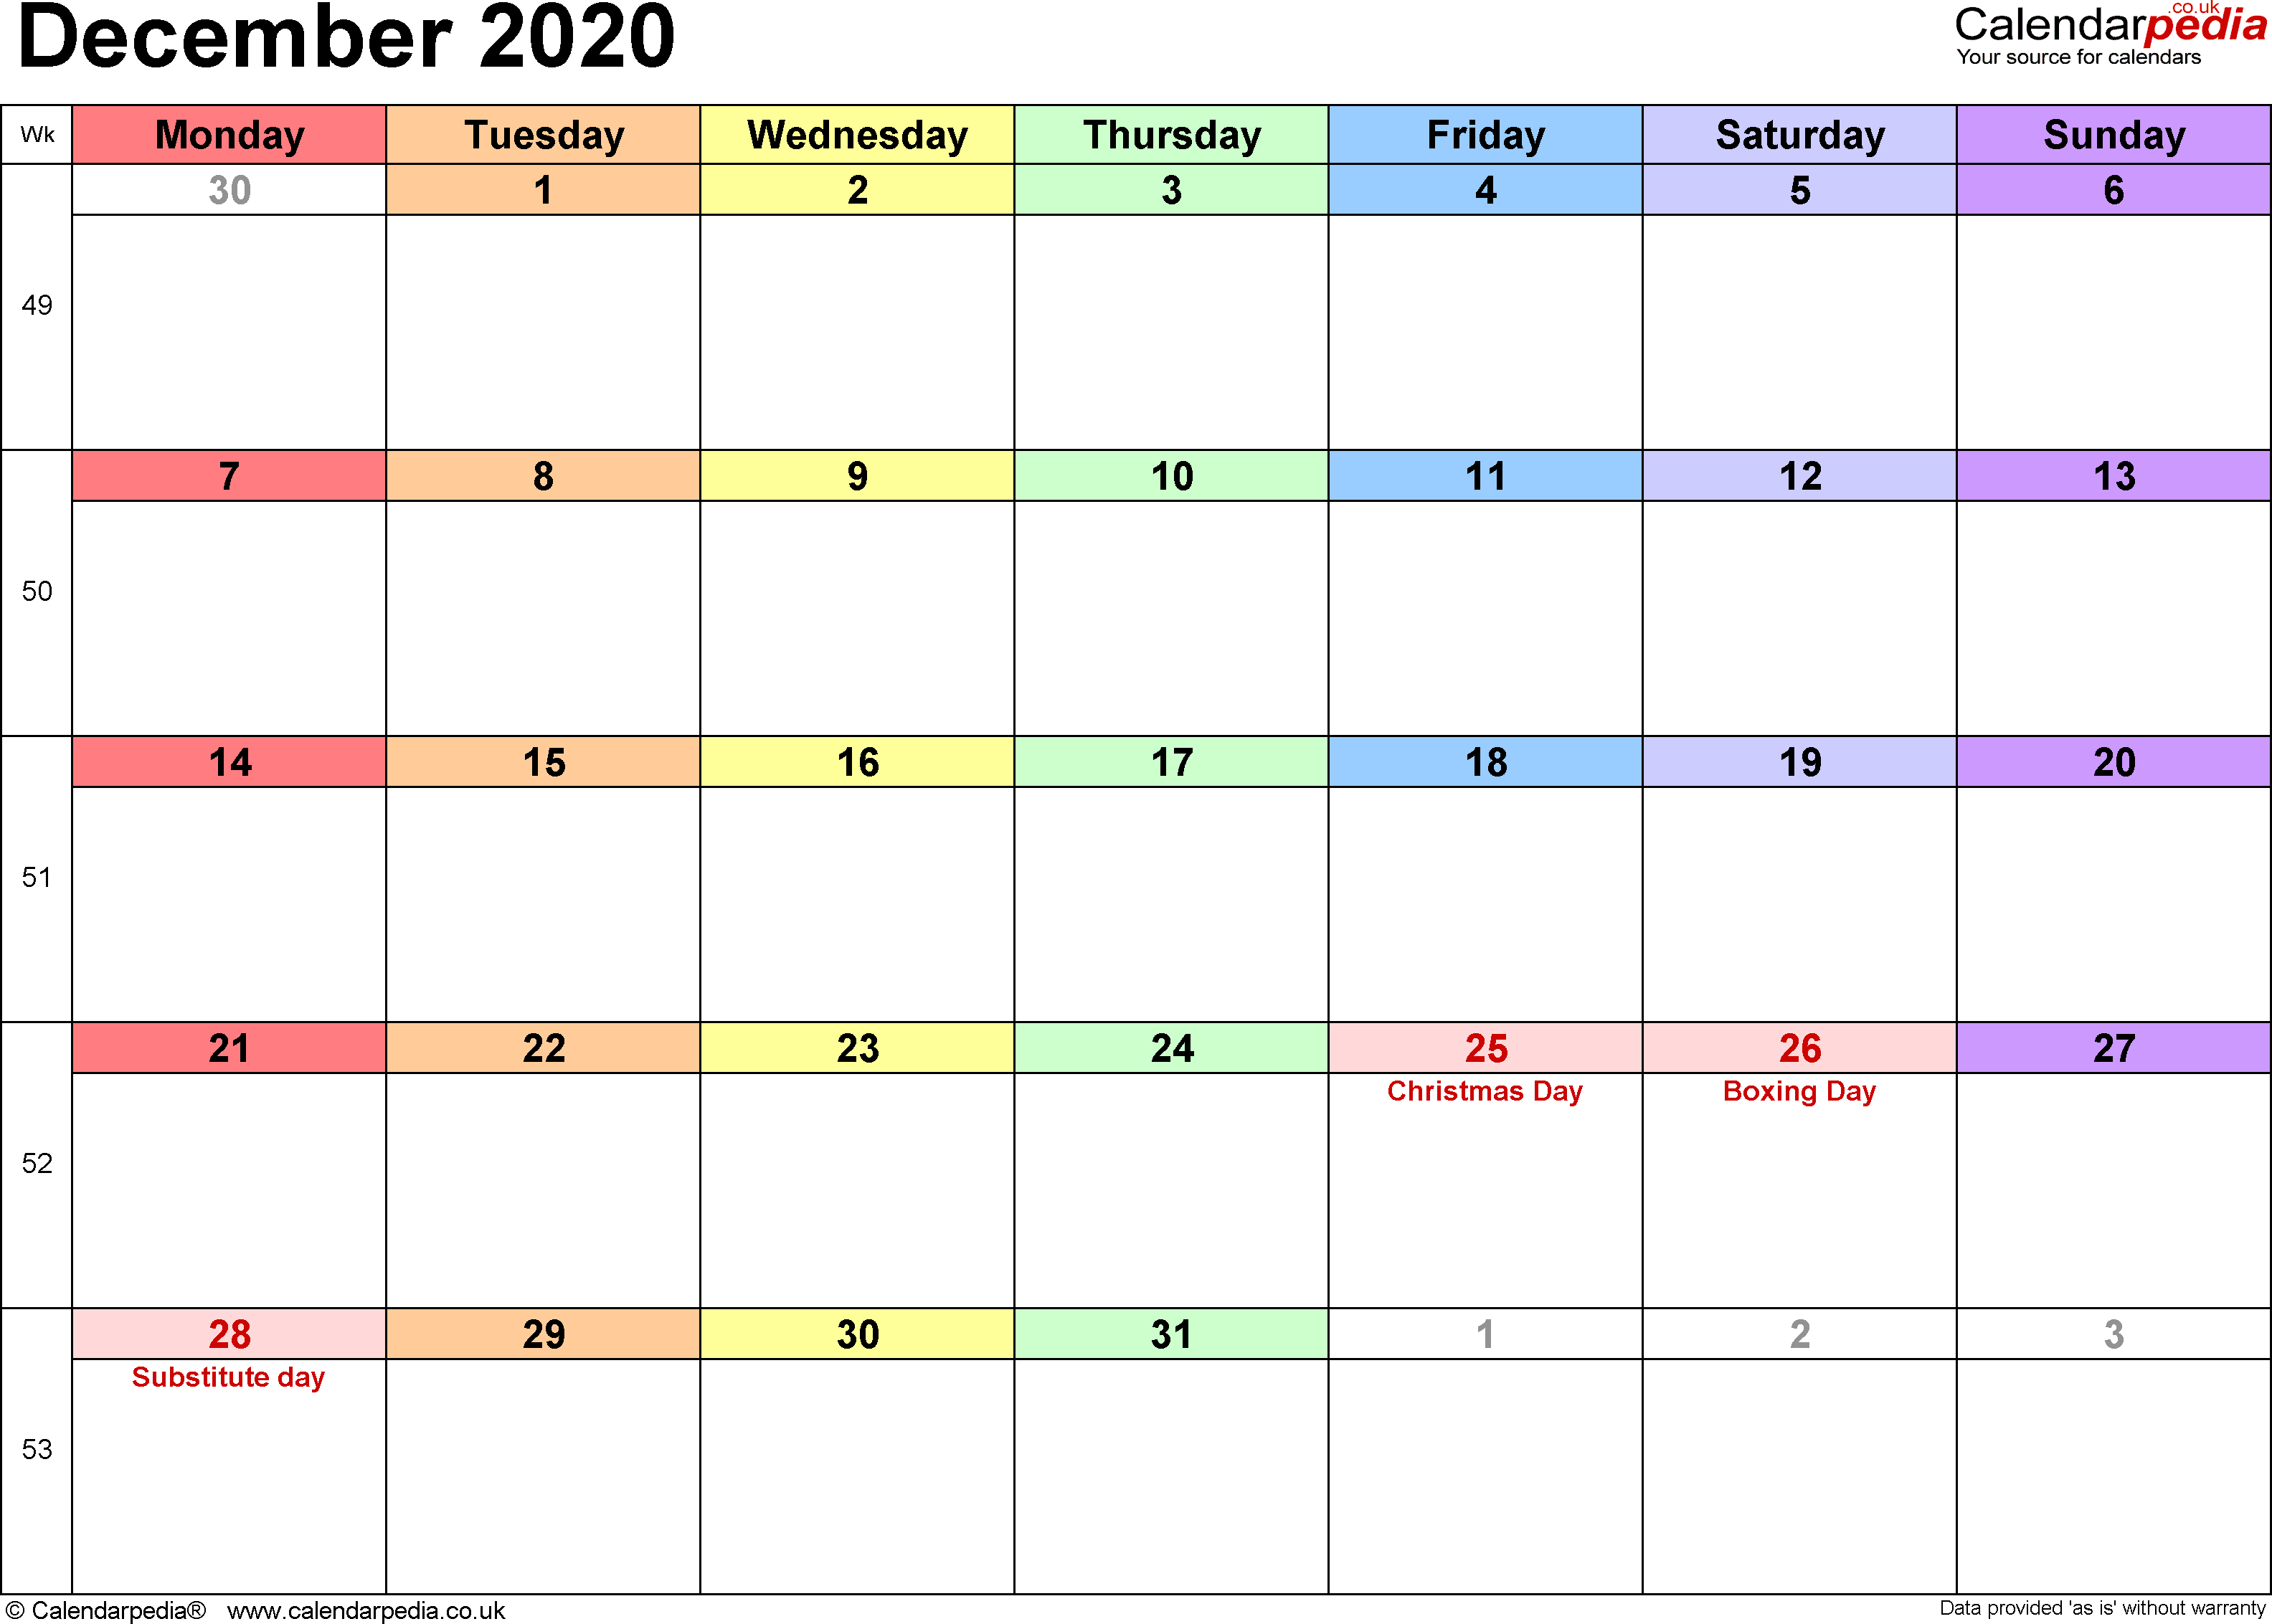 Calendar December 2020, landscape orientation, 1 page, with UK bank holidays and week numbers